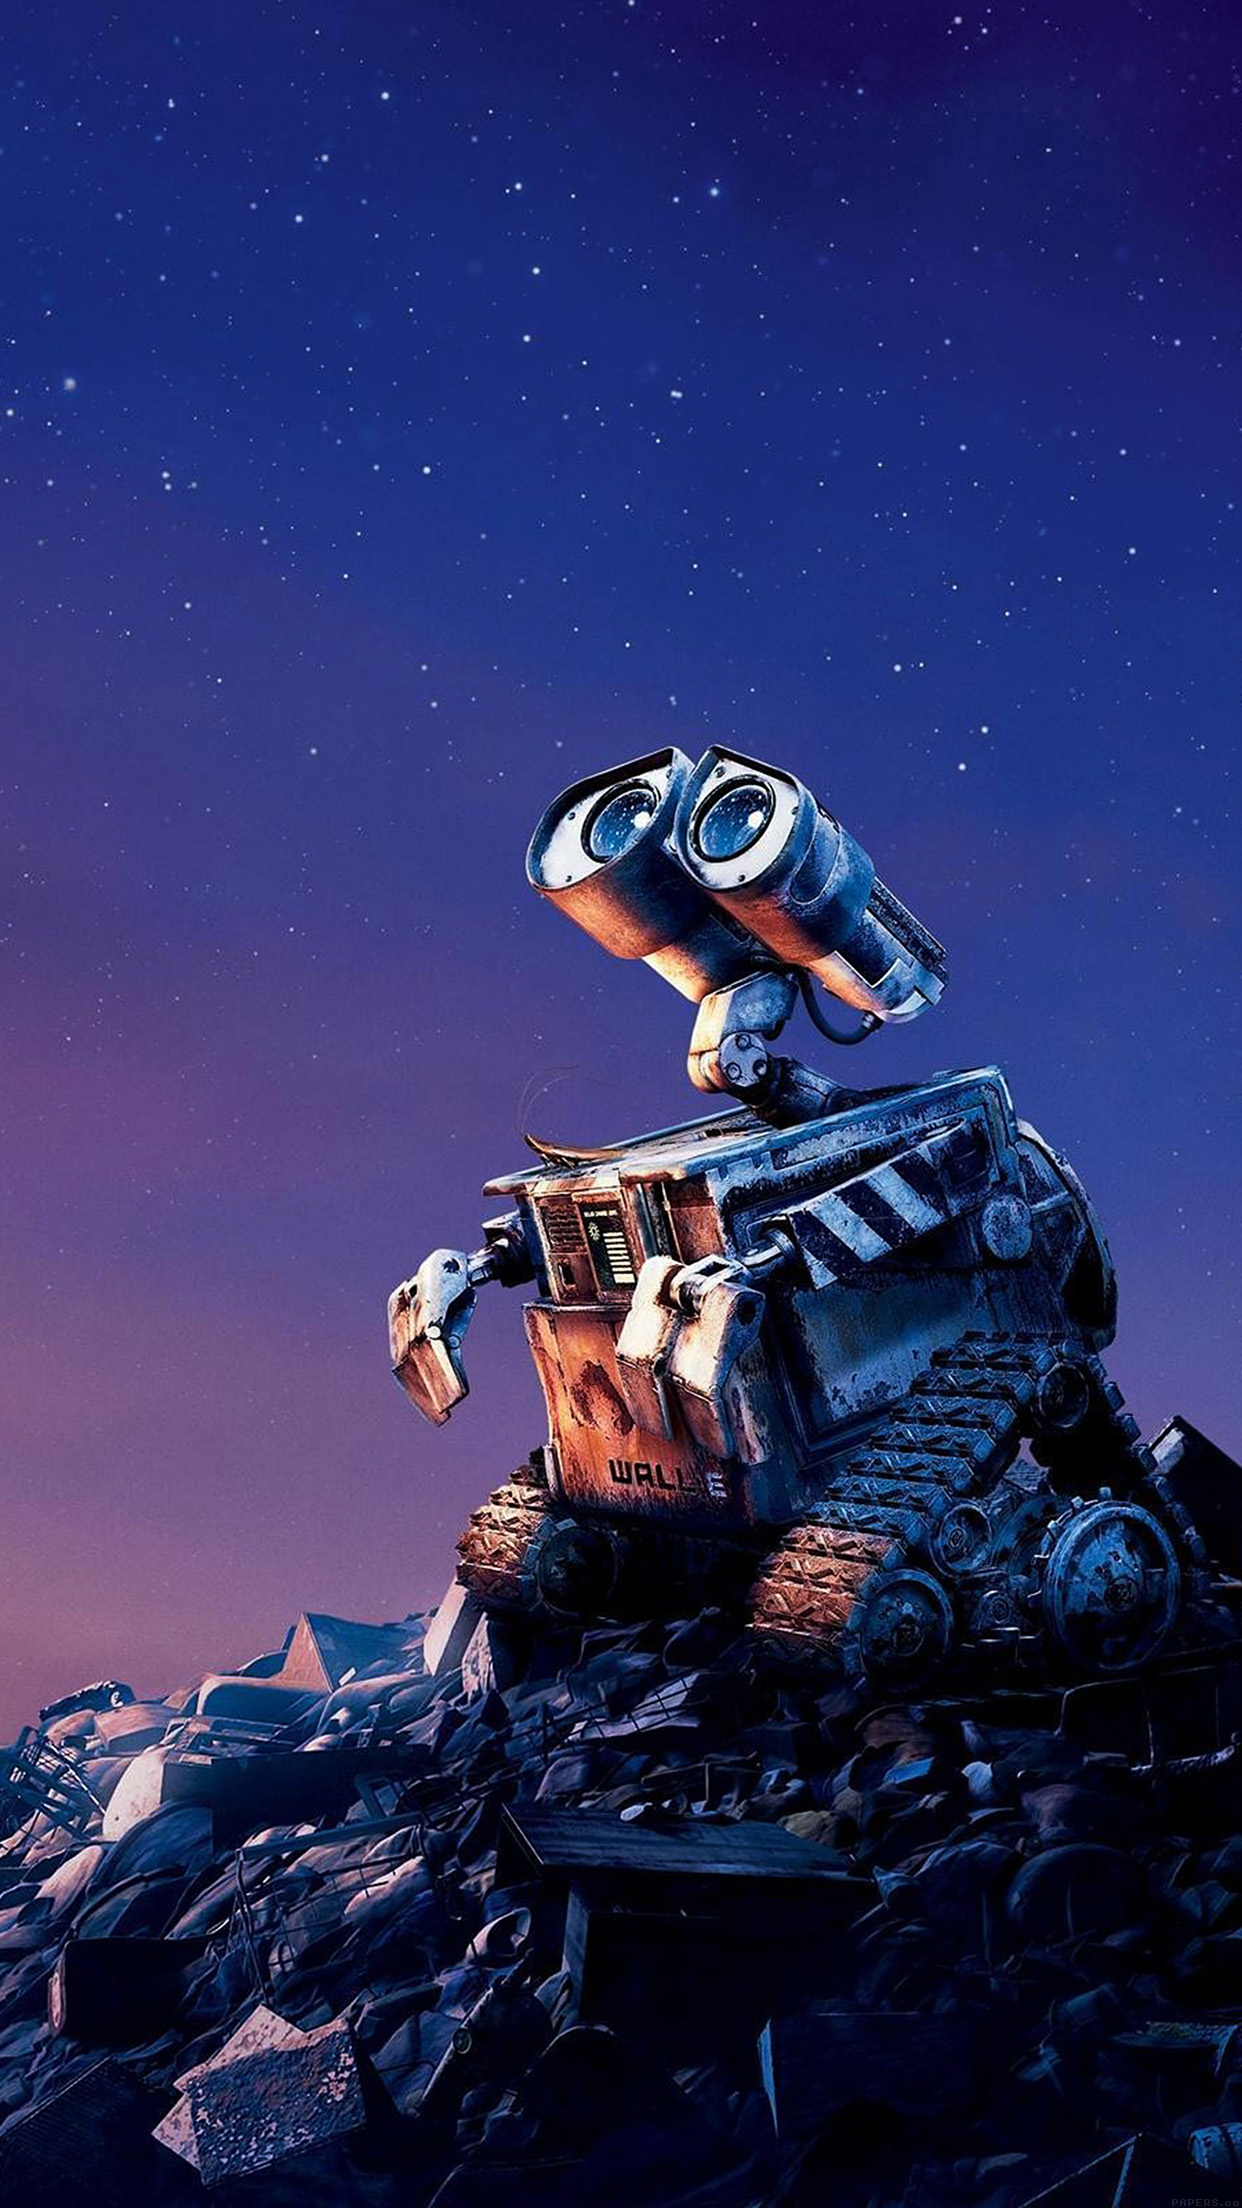 Ag66 Wall E Disney Want Go Home Art Papers Co